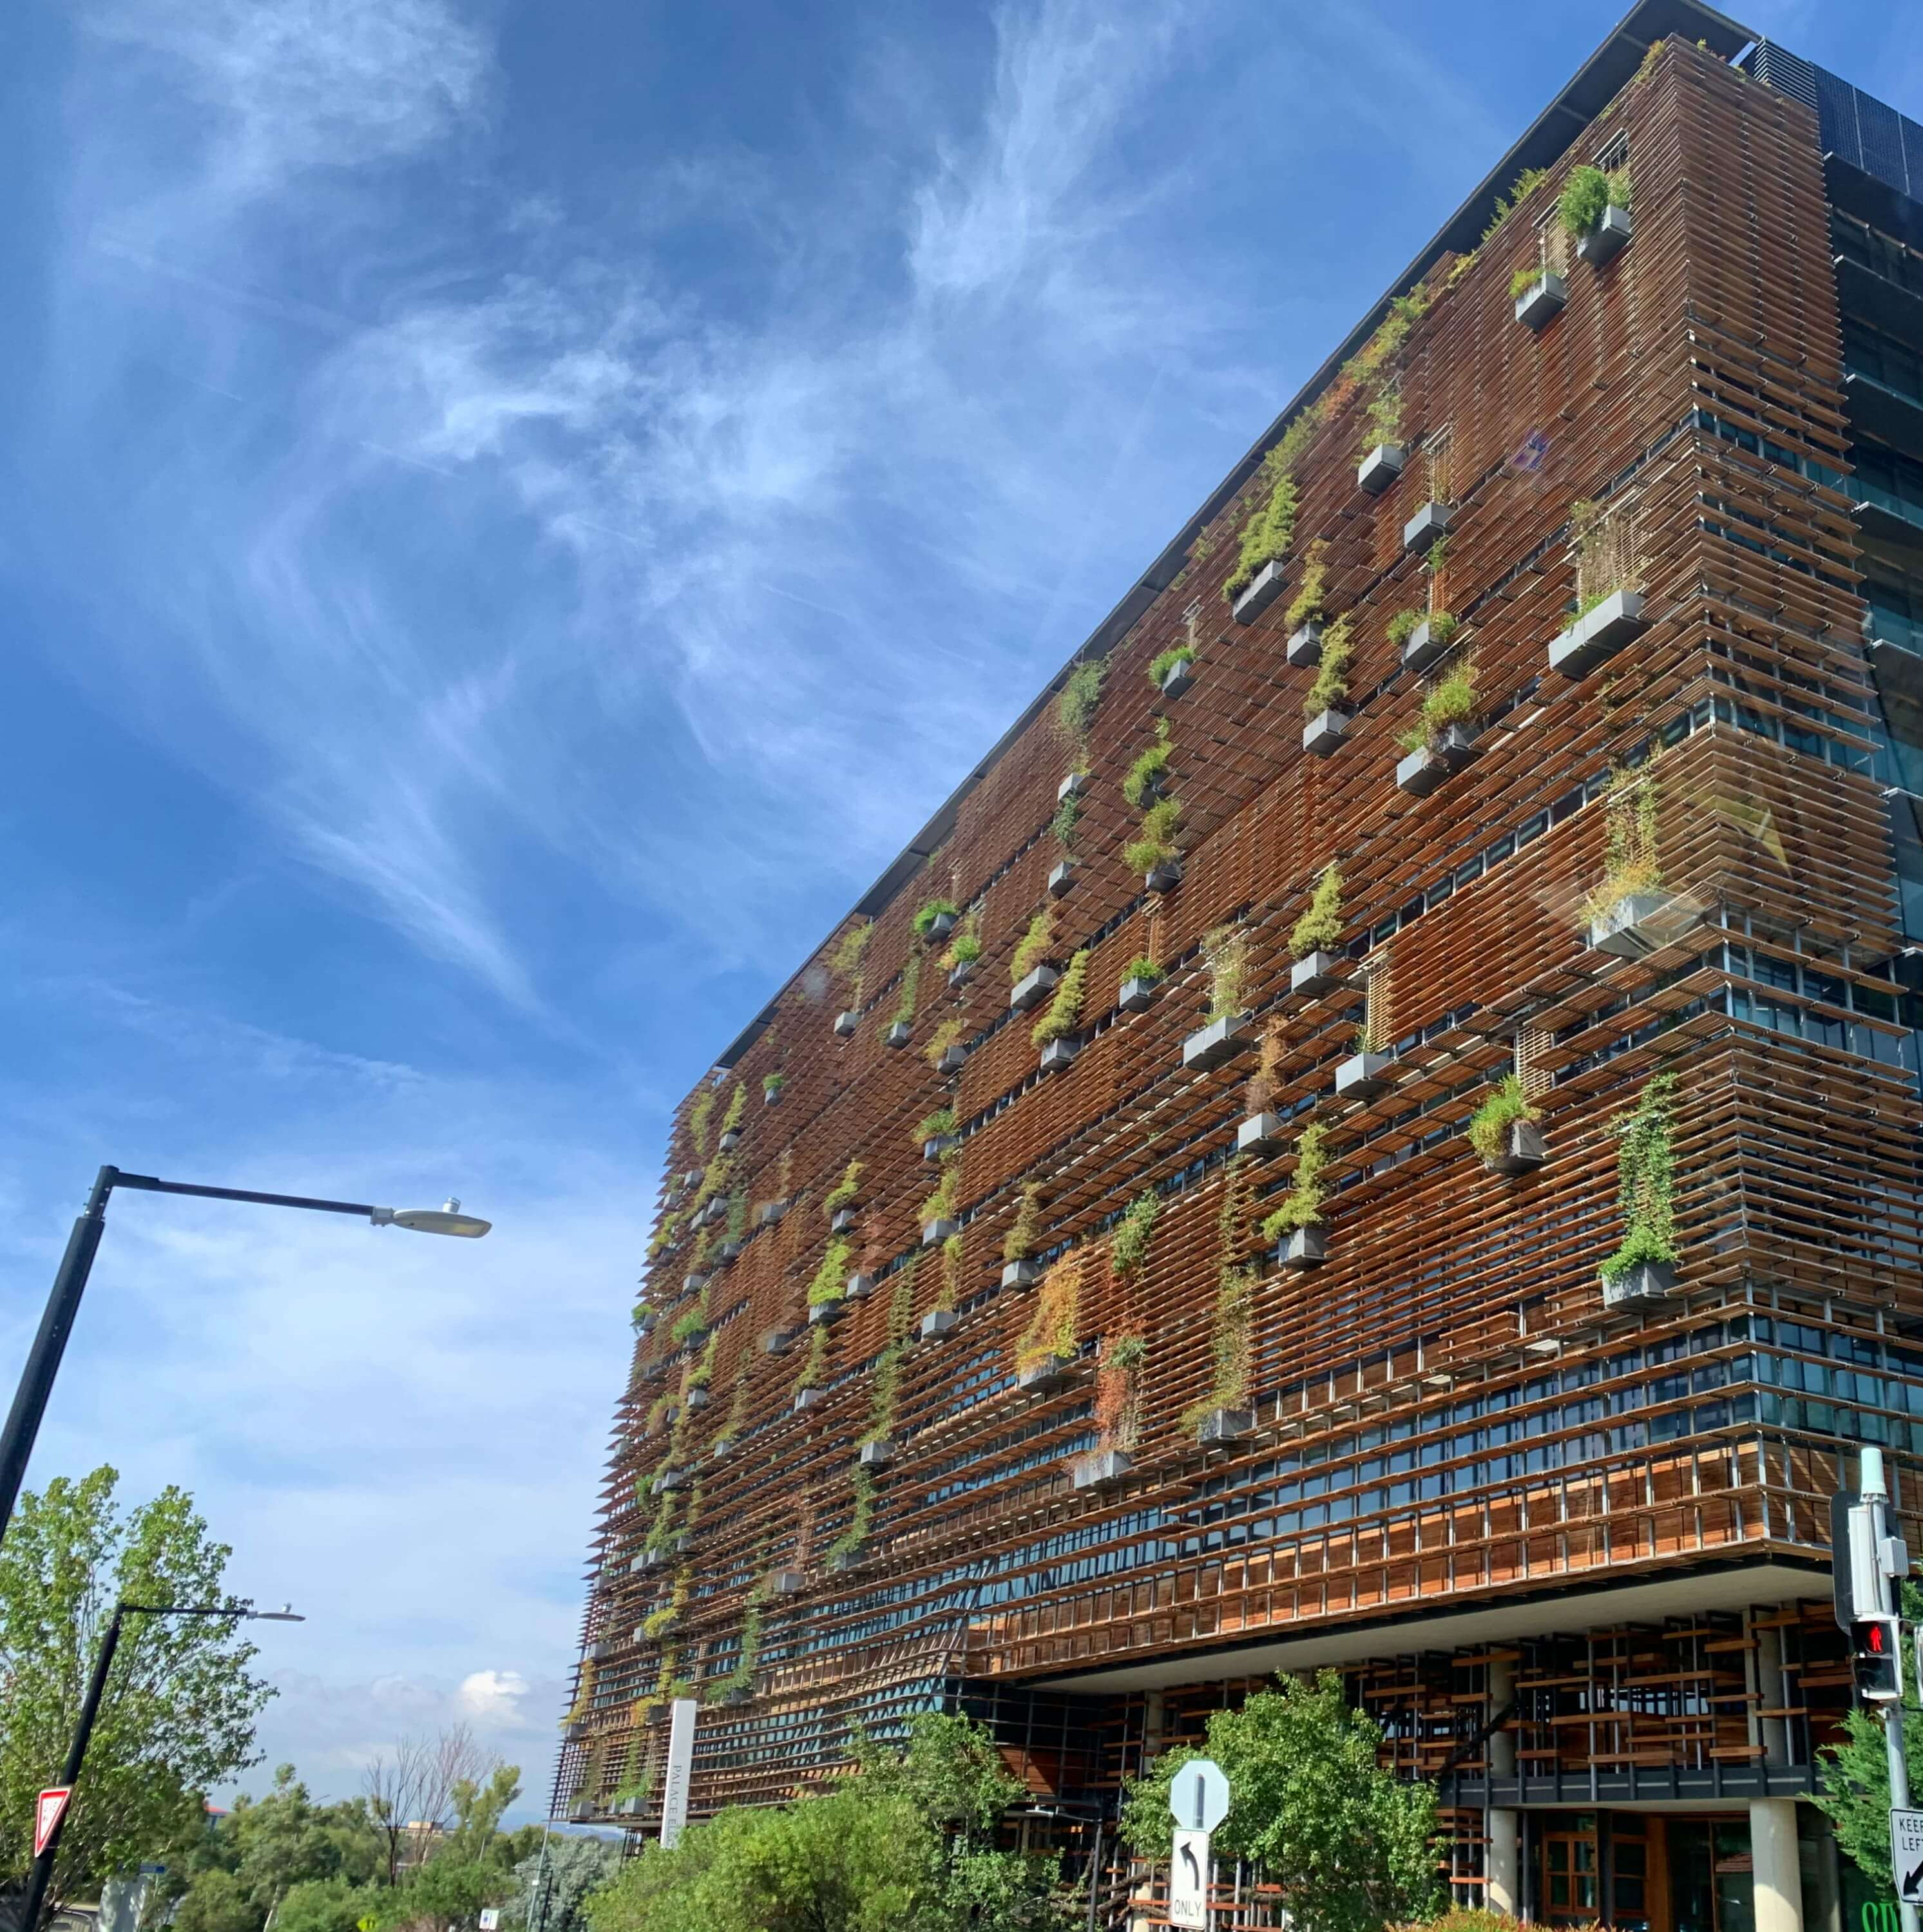 The Ovolo Nishi hotel in Canberra - plants growing on its facade - a conscious architectural design